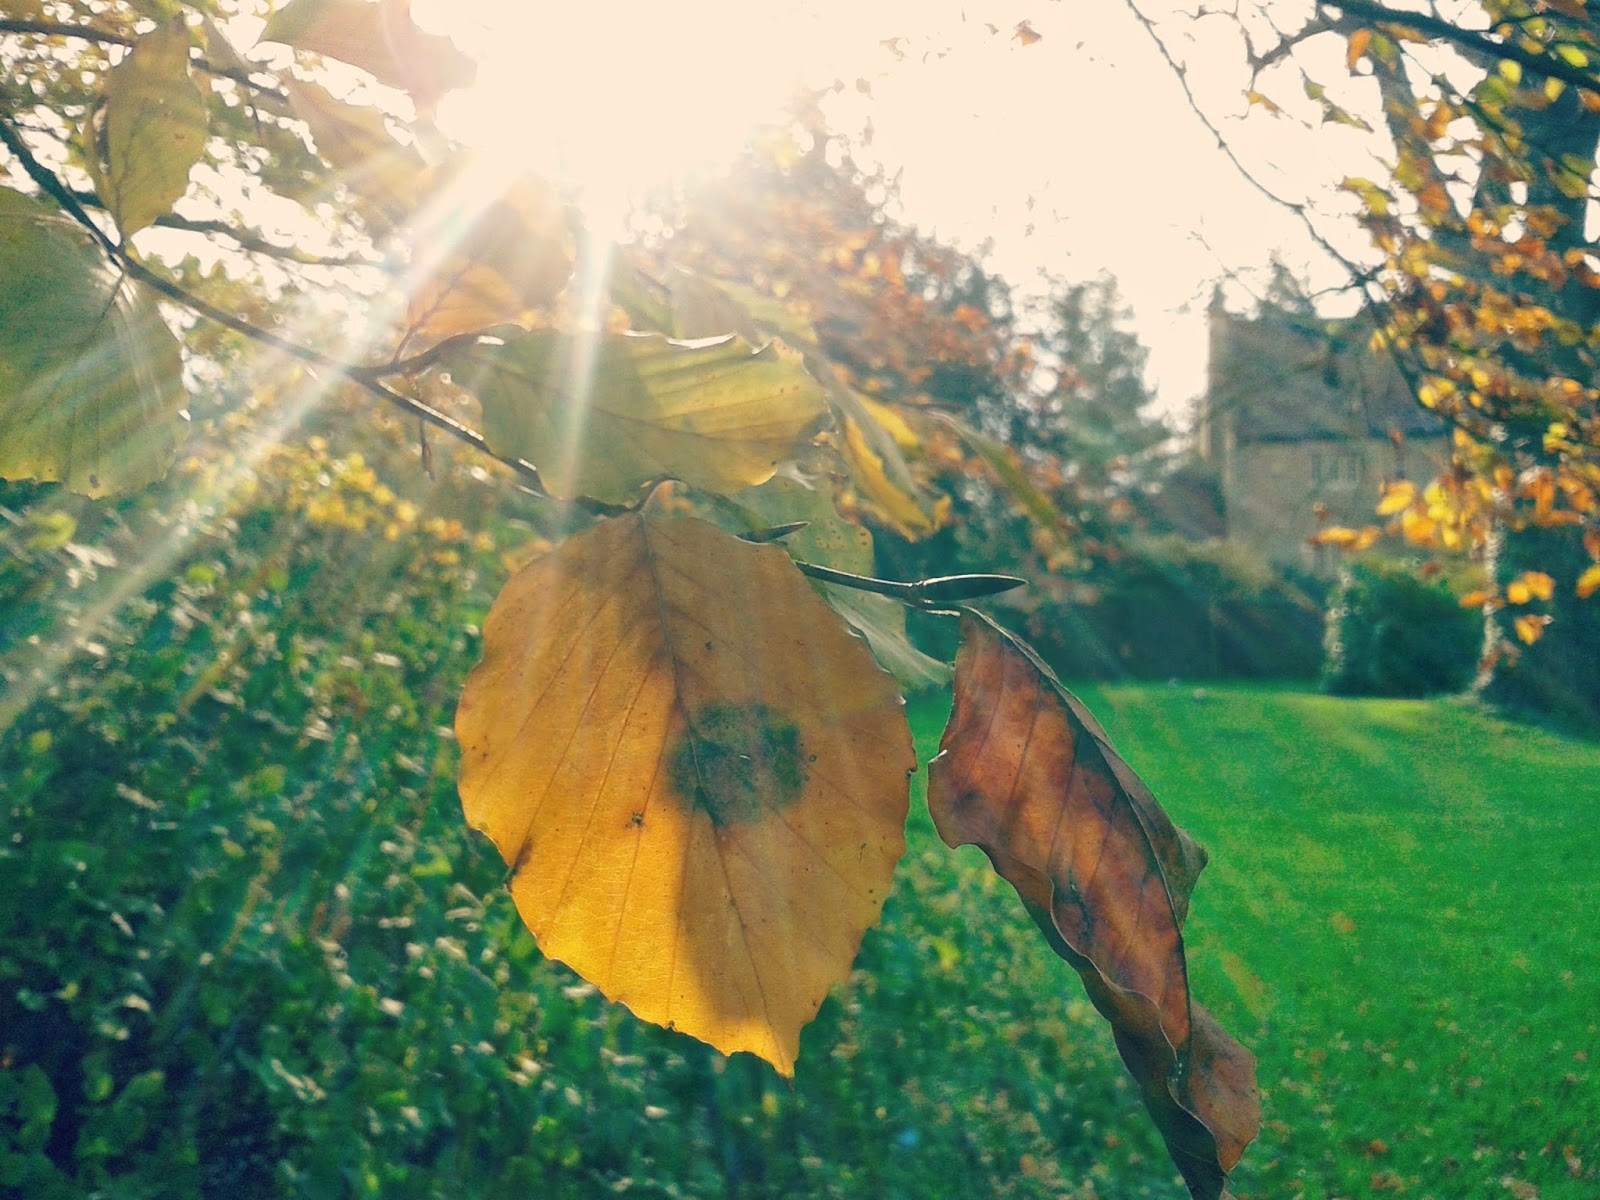 Project 365 day 320 - Autumn at Lacock // 76sunflowers